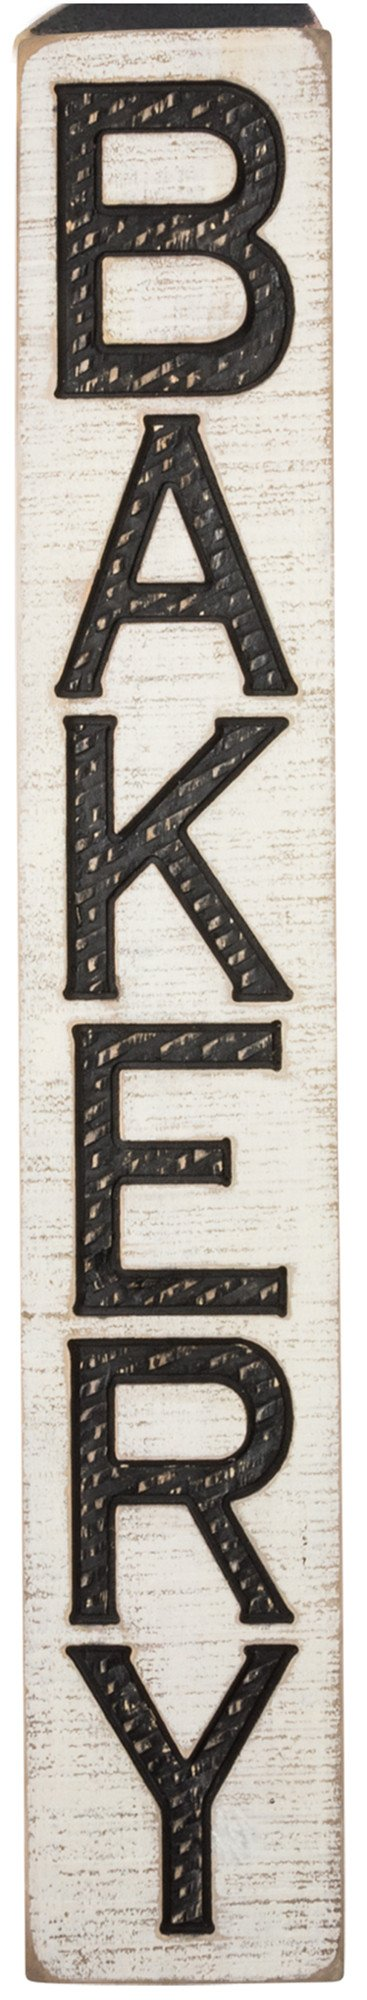 Vintage Carved Bakery Sign with Rough Painted Finish - 32-in